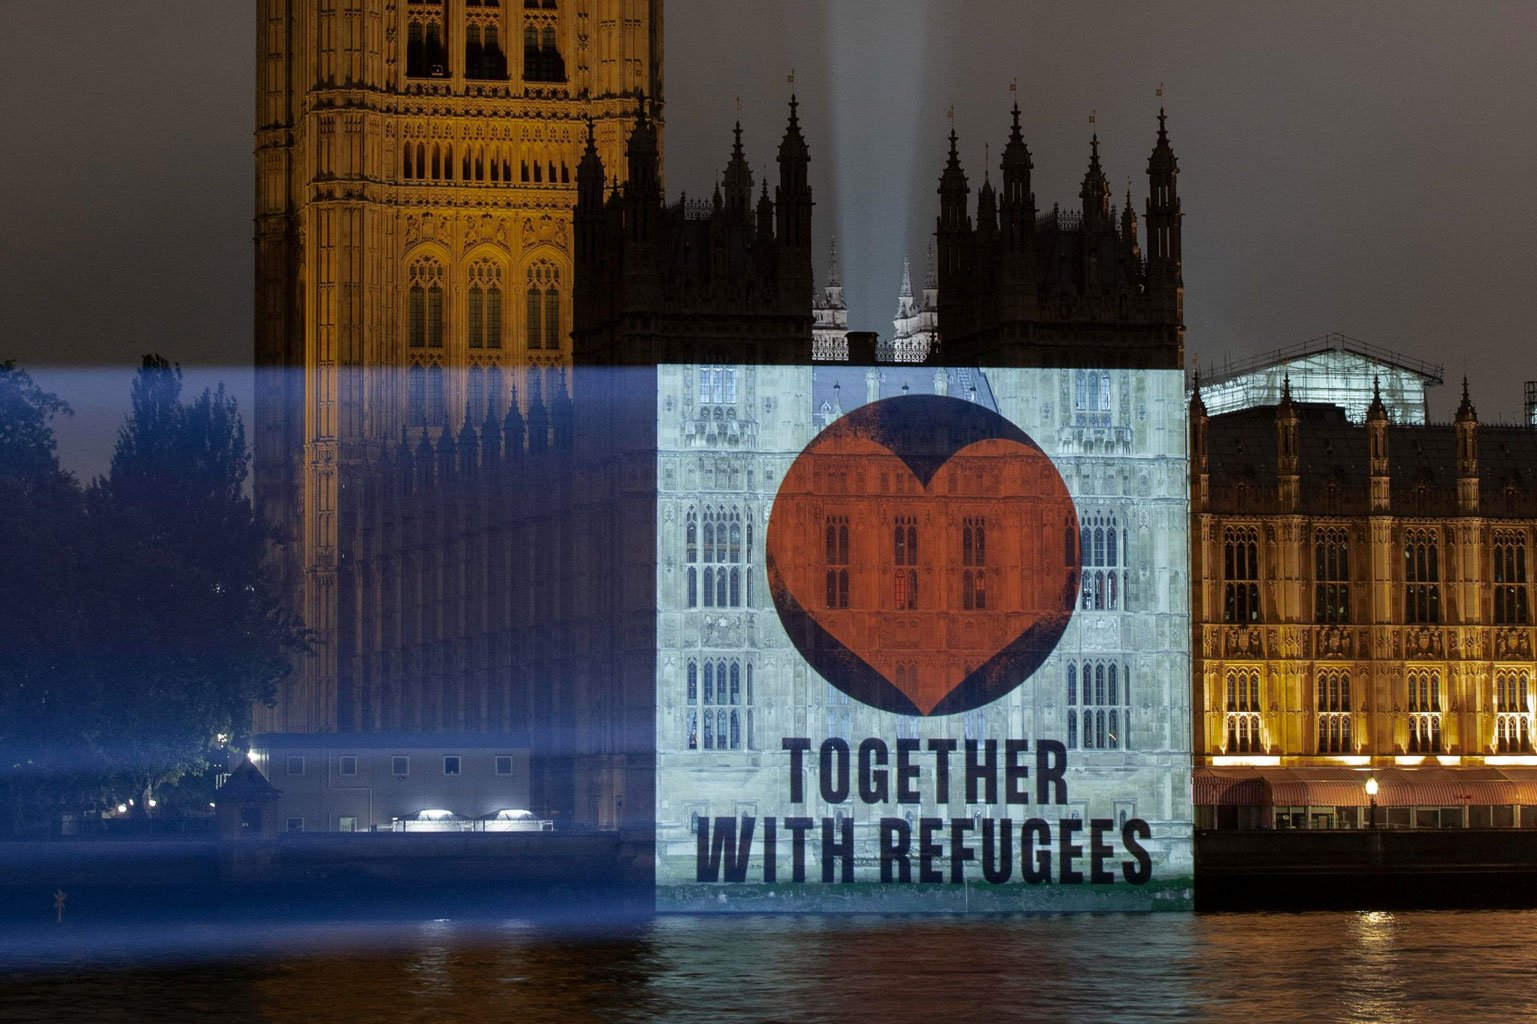 Orange heart projected on House of Commons